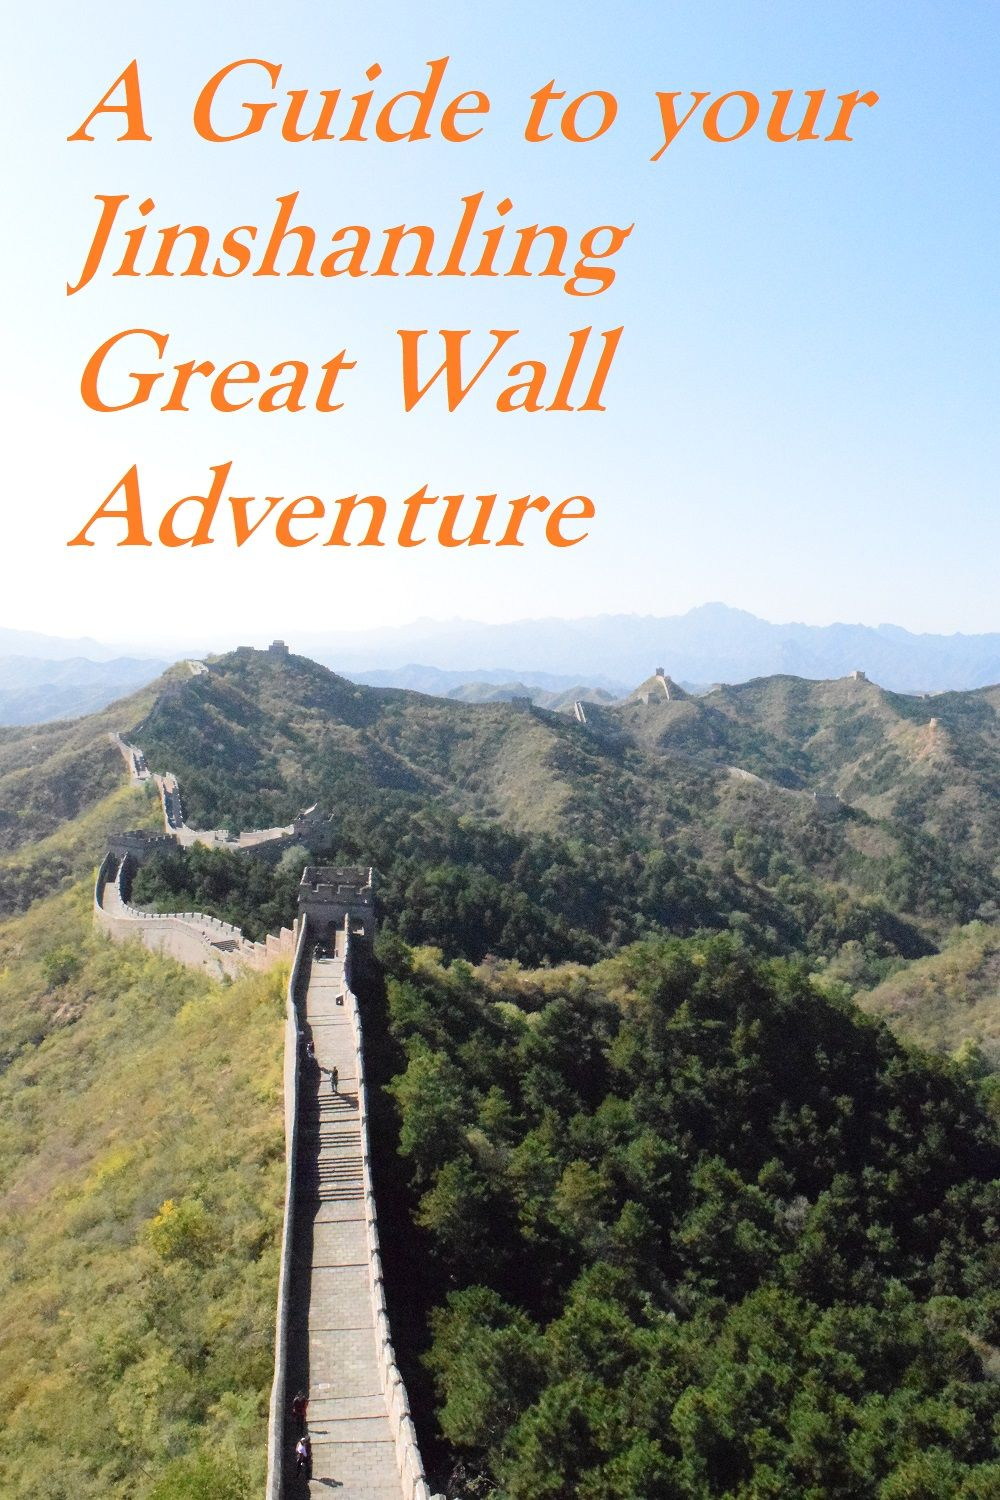 Beijing China Ultimate Guide To The Jinshanling Great Wall Trip Stay The Night Travel Inspiration